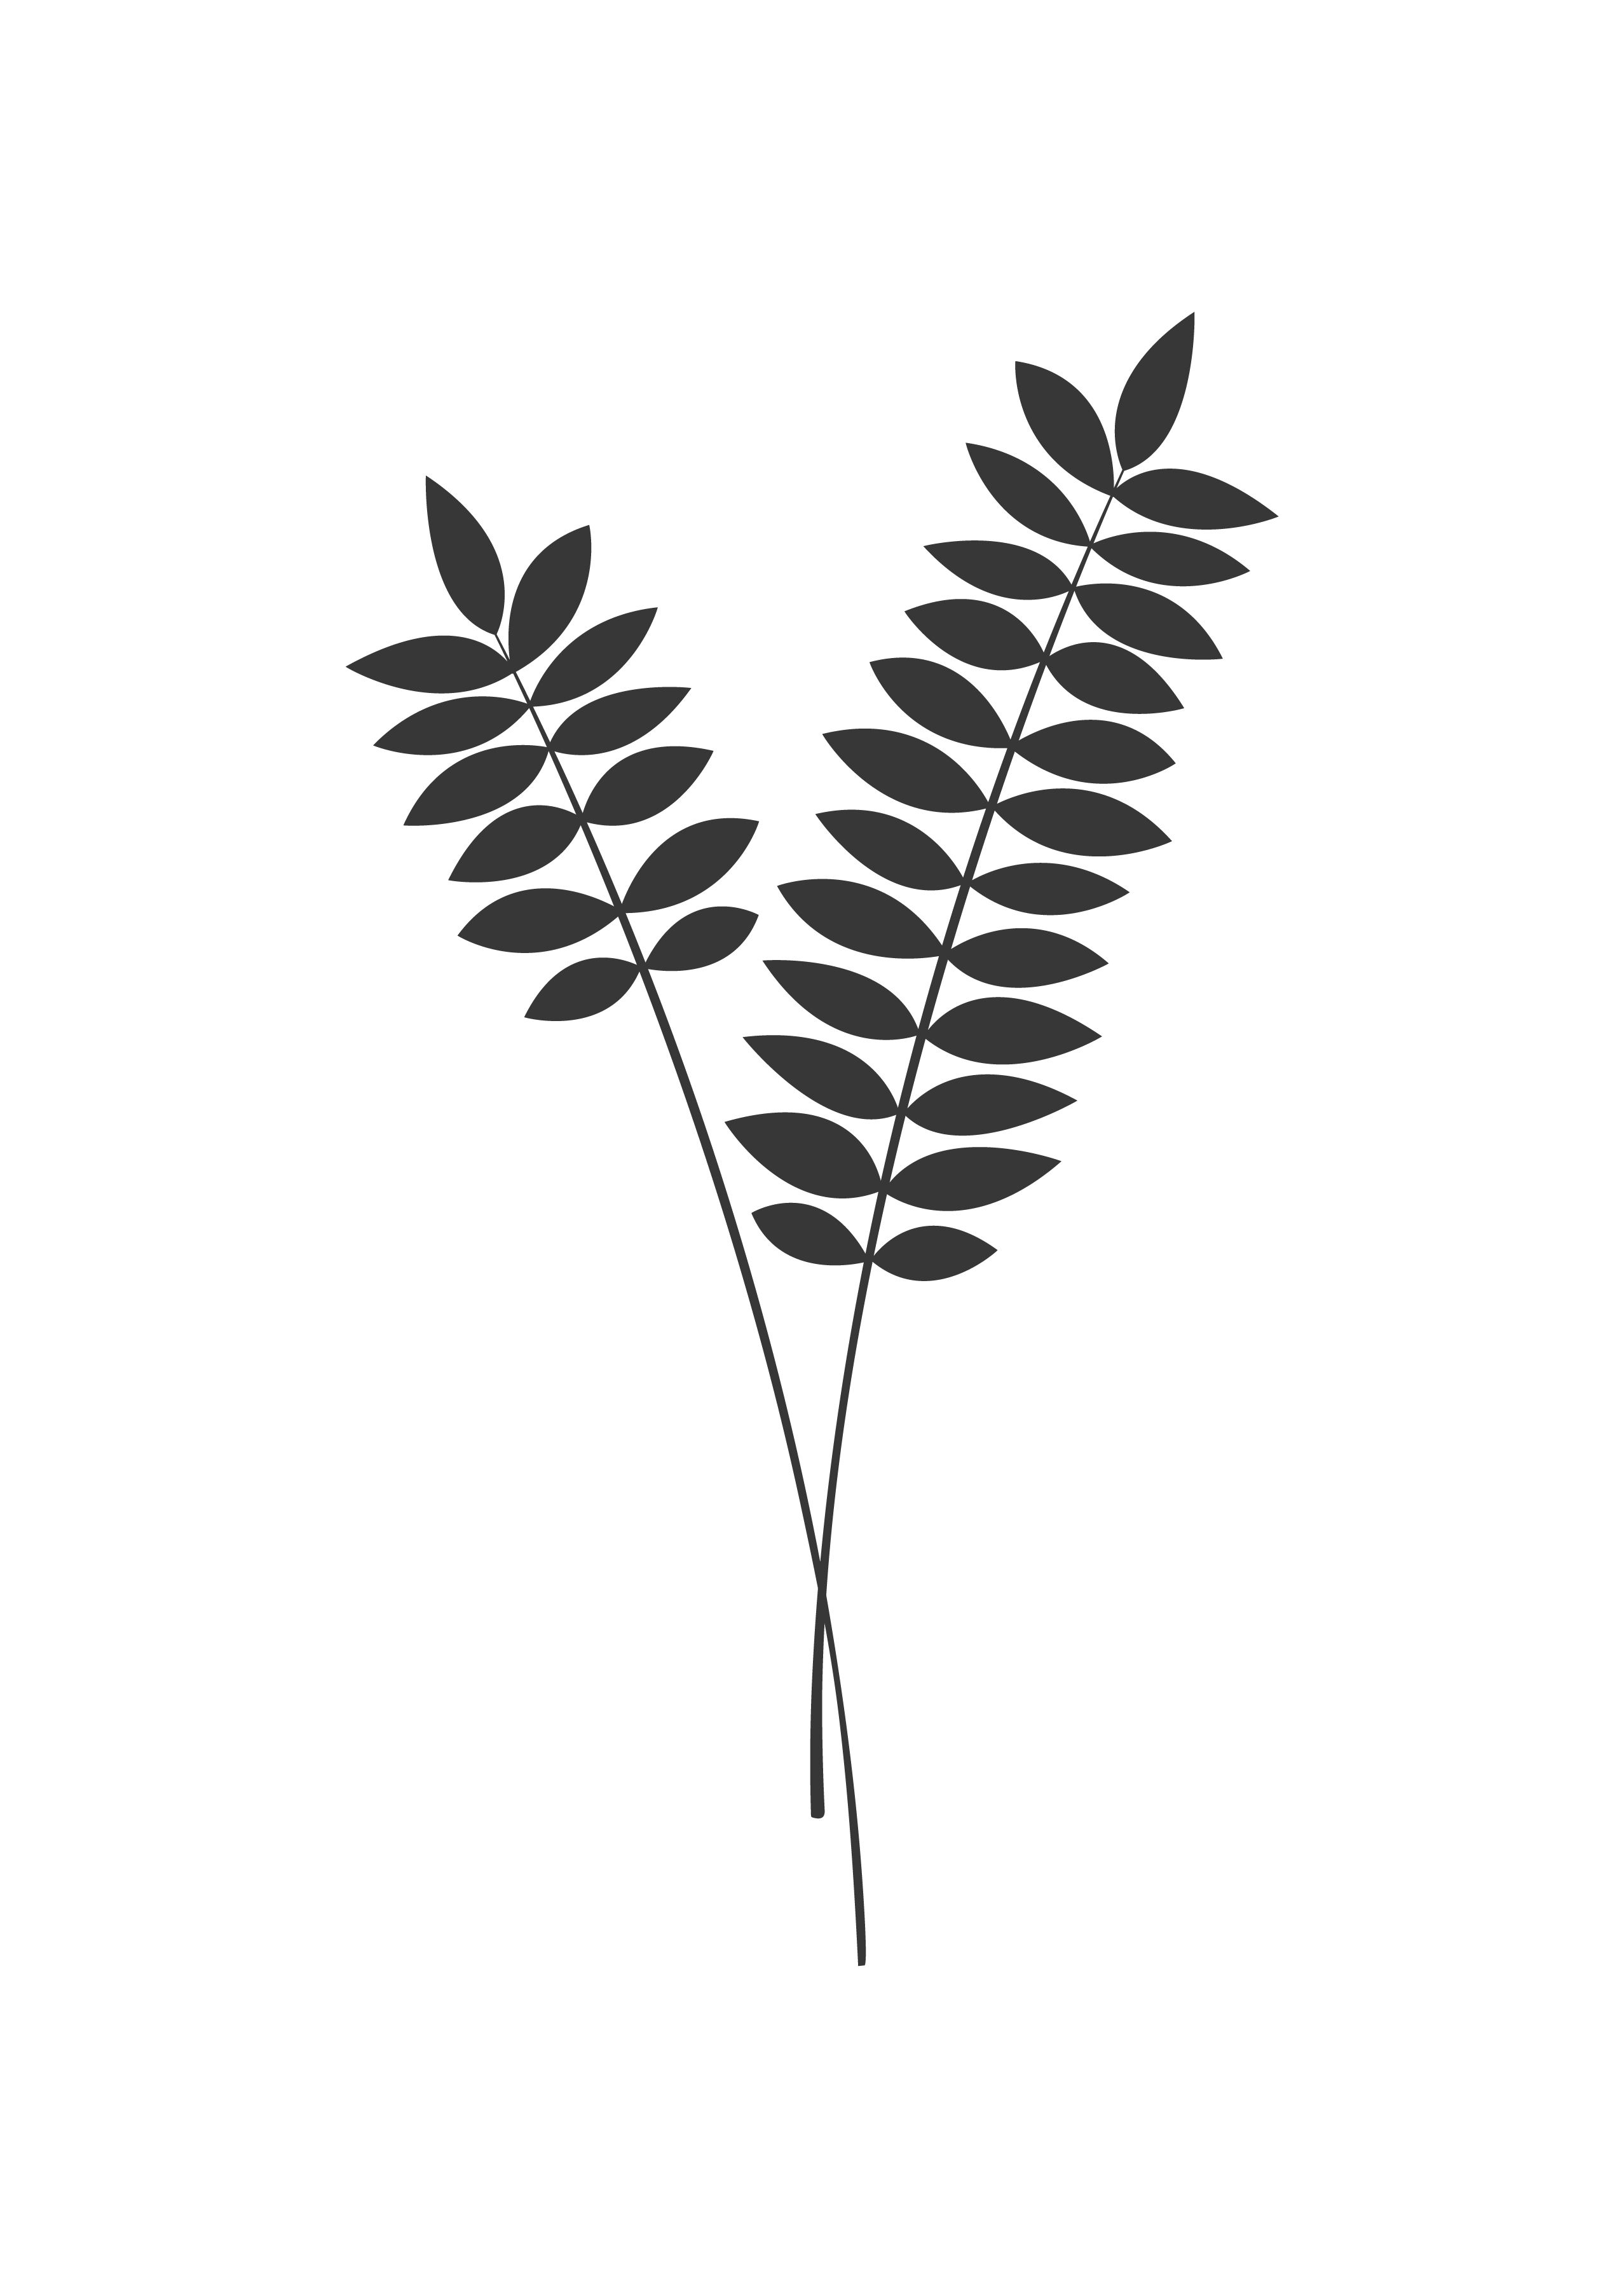 Art Print Black And White Wall Art Print With Leaves In Black And White Printable